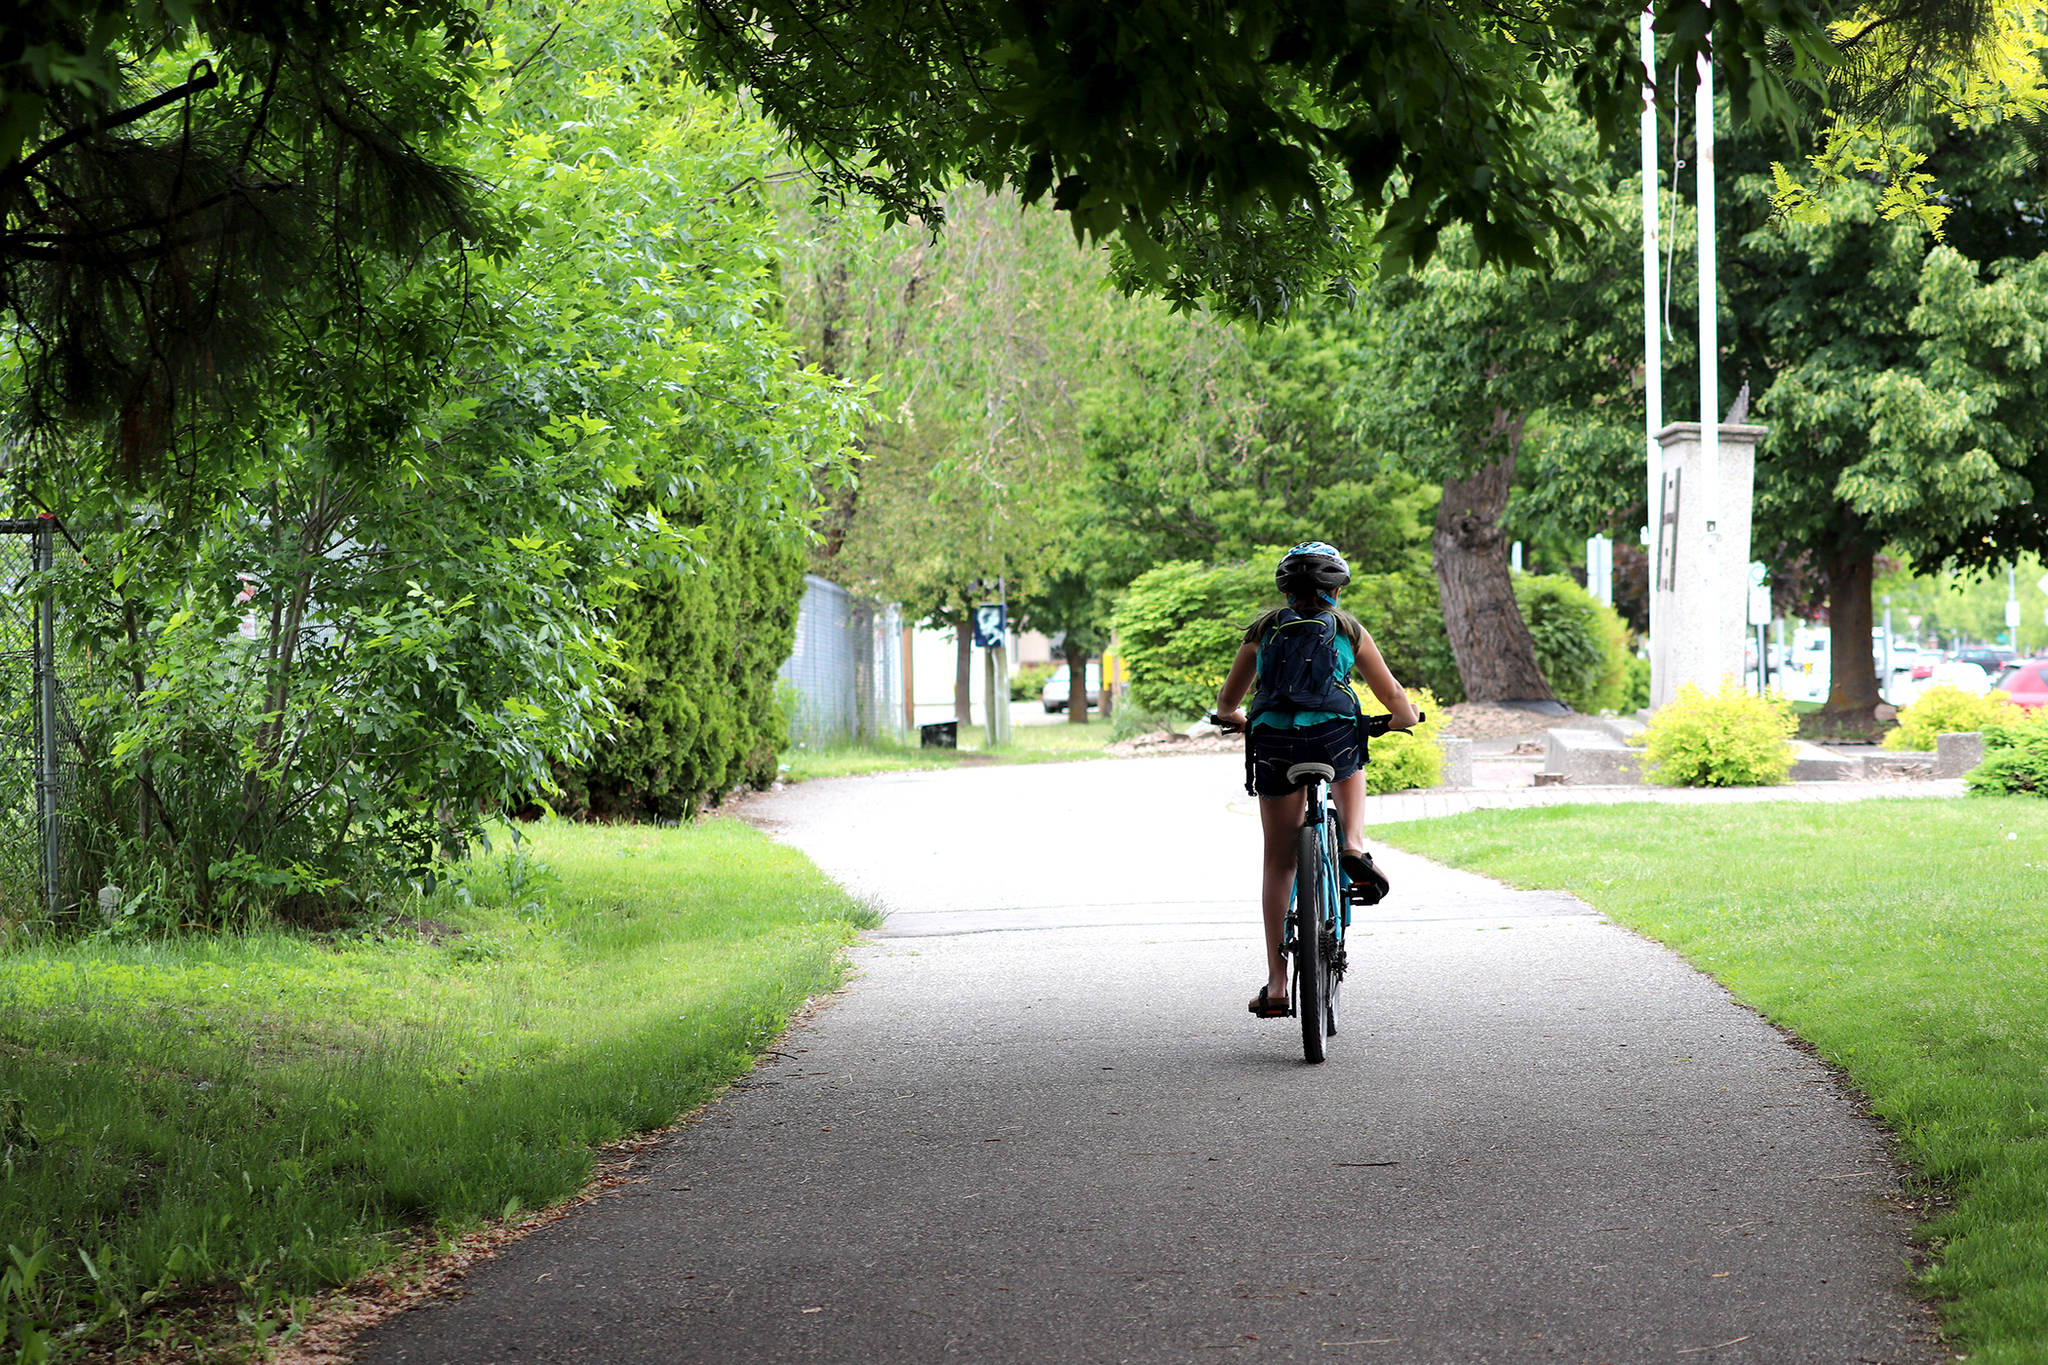 Linear Park's wide, paved walkway is used by many, including bicyclists, dogs, walkers and runners. (Morning Star file photo)